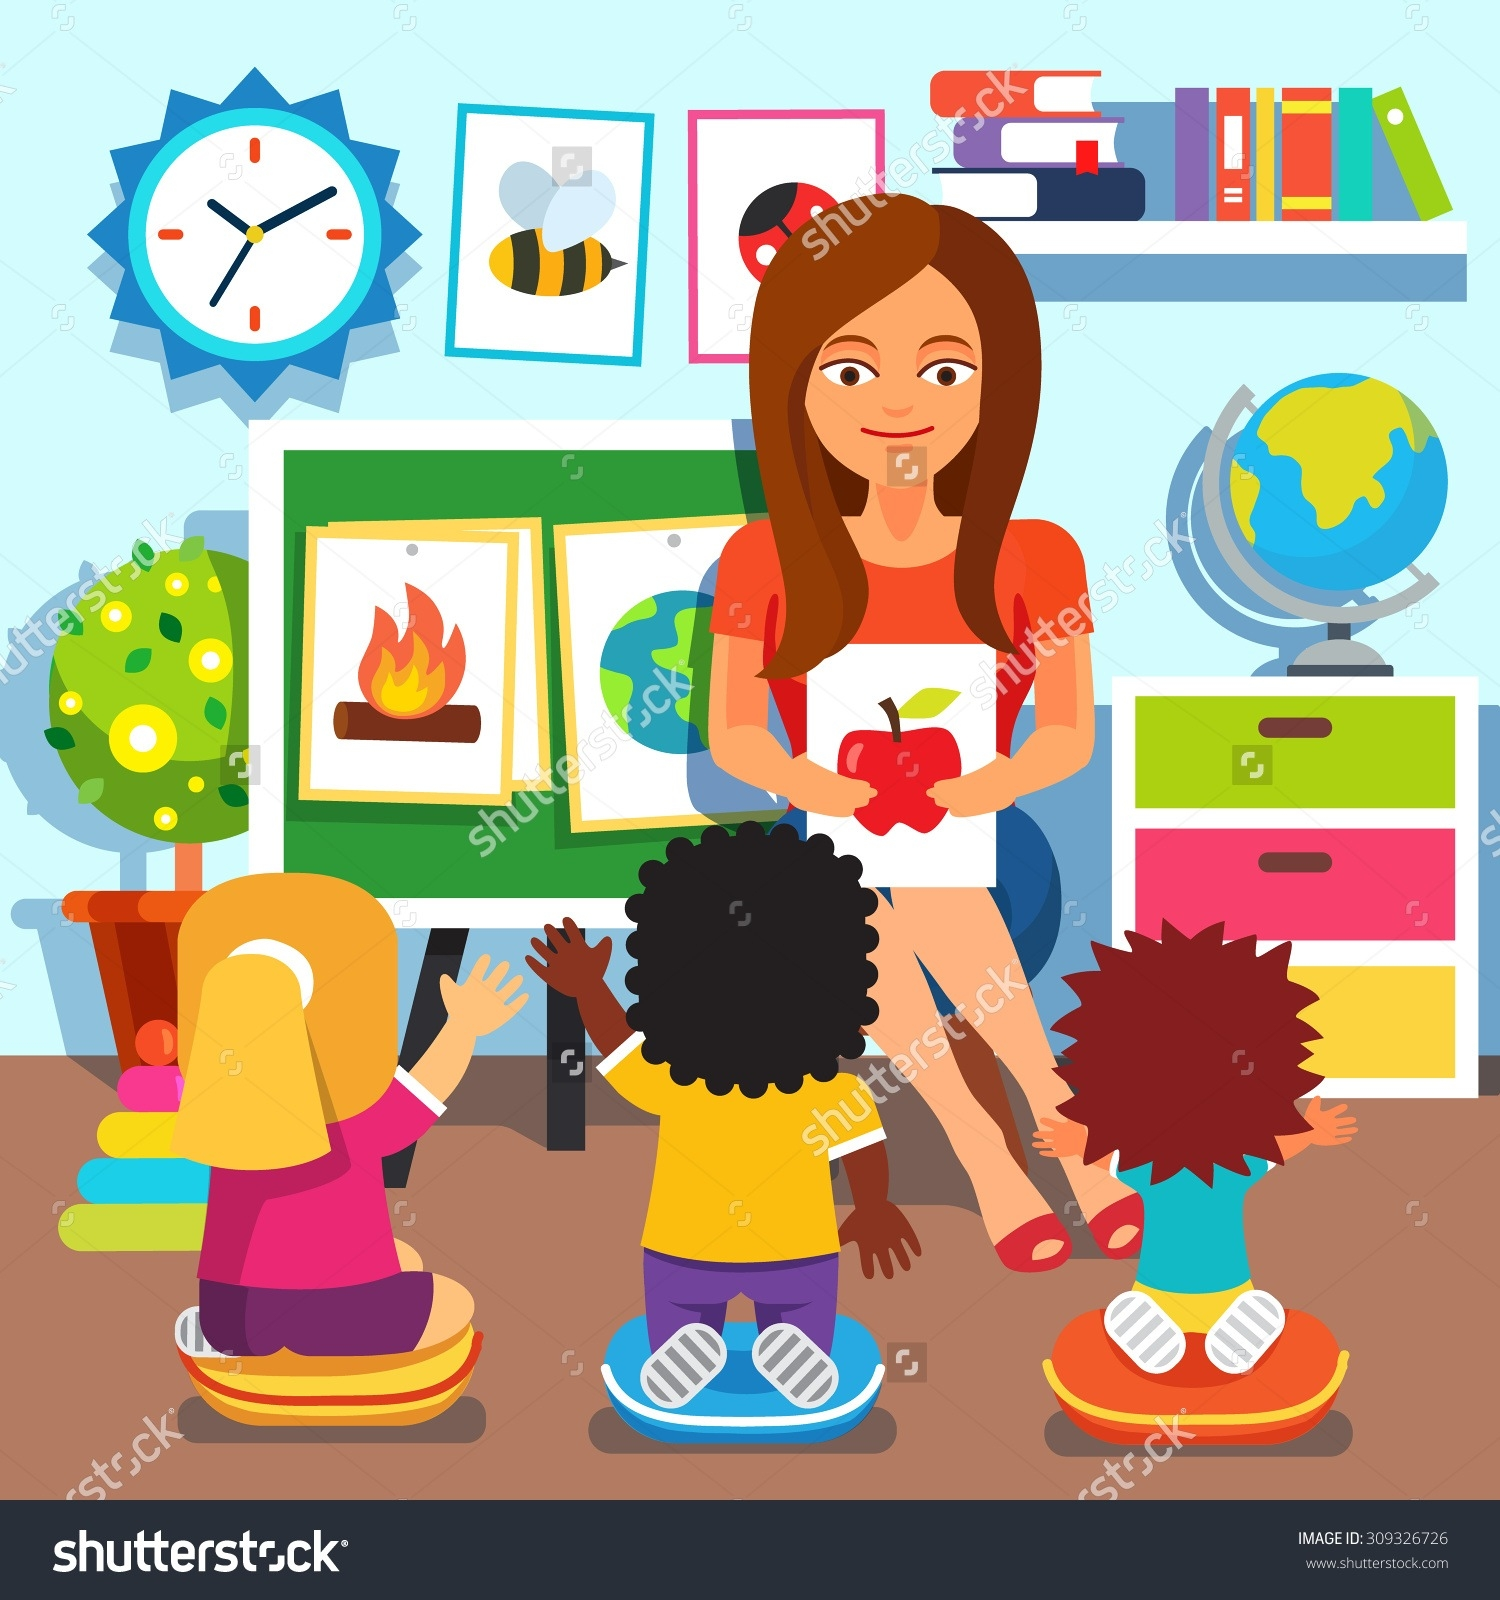 Classroom clipart. Classroomclipart cliparts free download